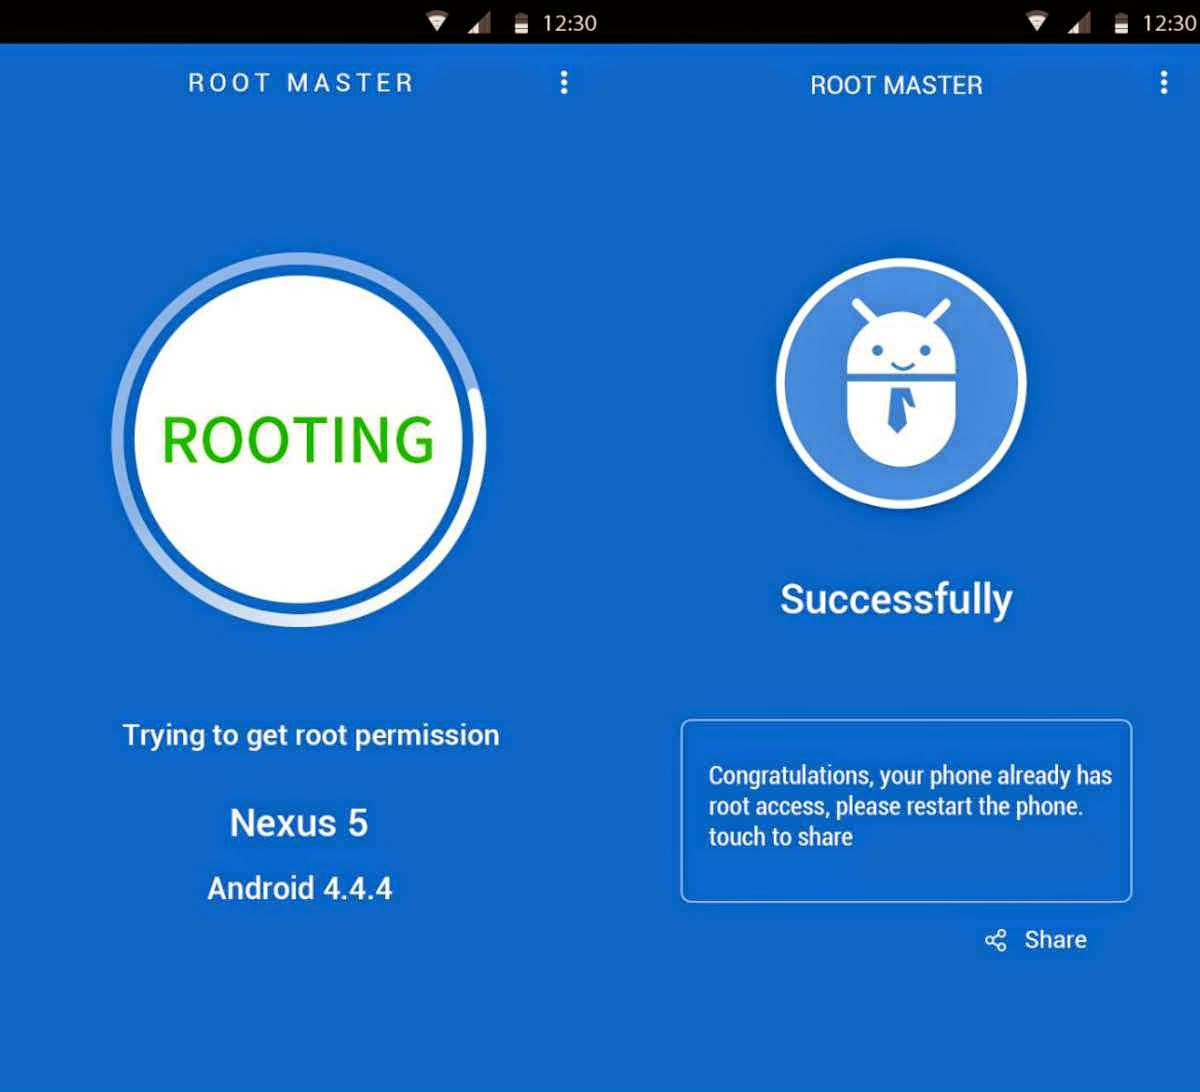 Easily Root Android Device With Root Master